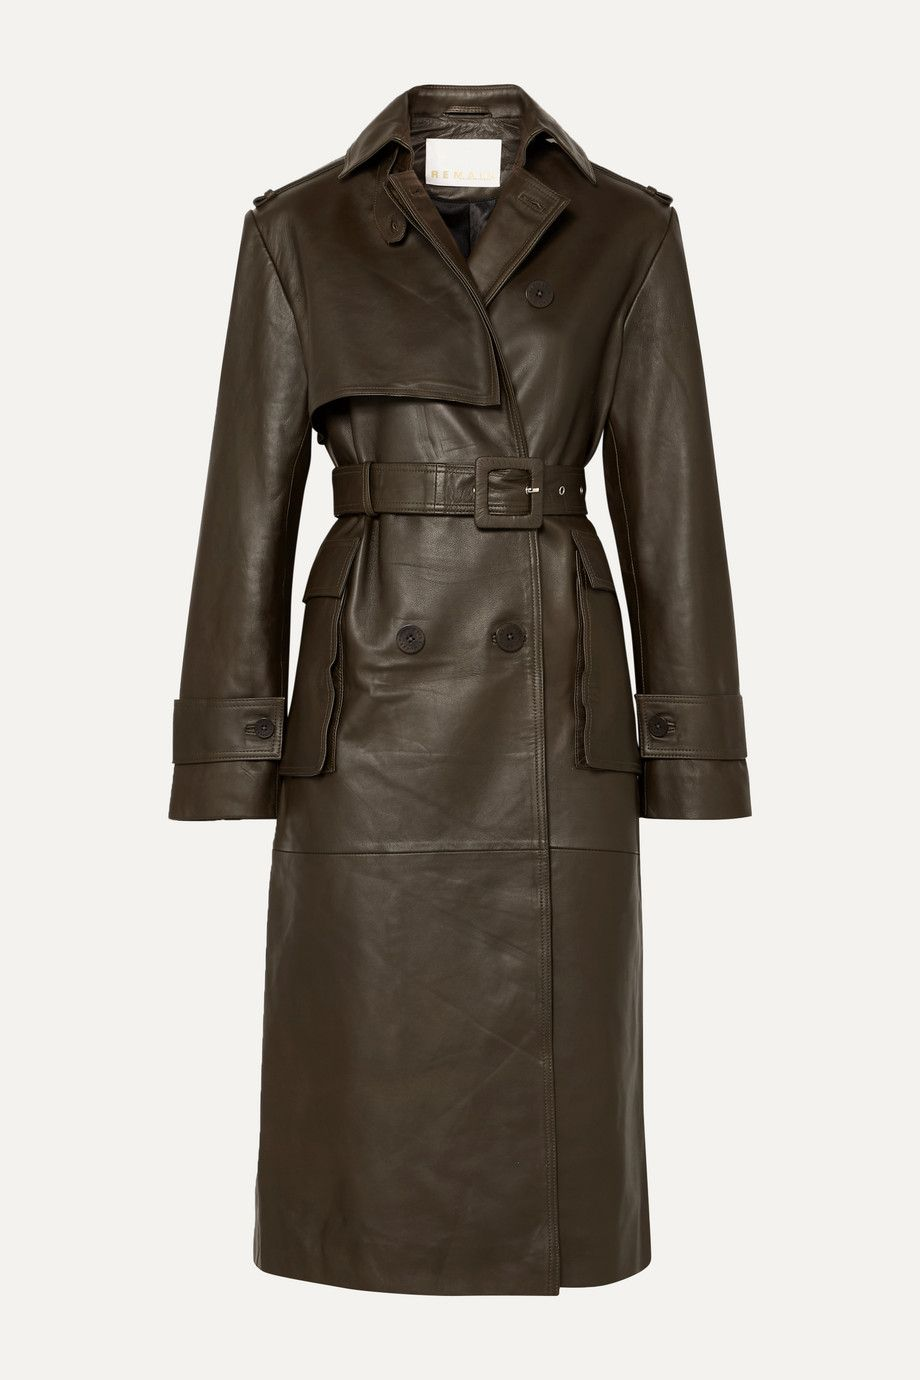 remain-birger-christensen-pirello-belted-leather-trench-coat-army-green